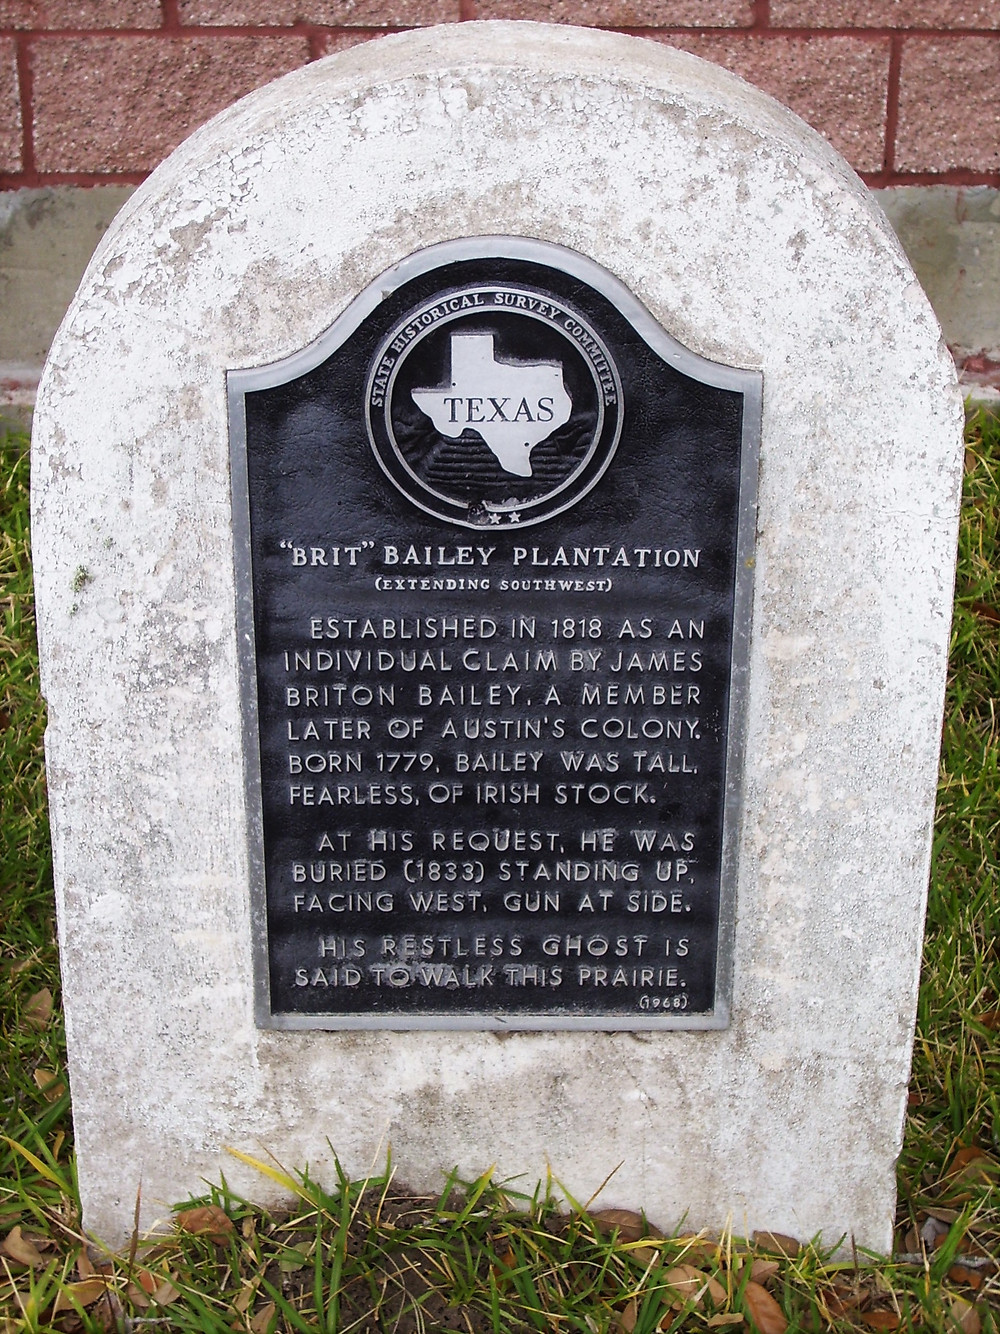 Brit Bailey Plantation Texas Historical Marker, Brazoria County, Texas